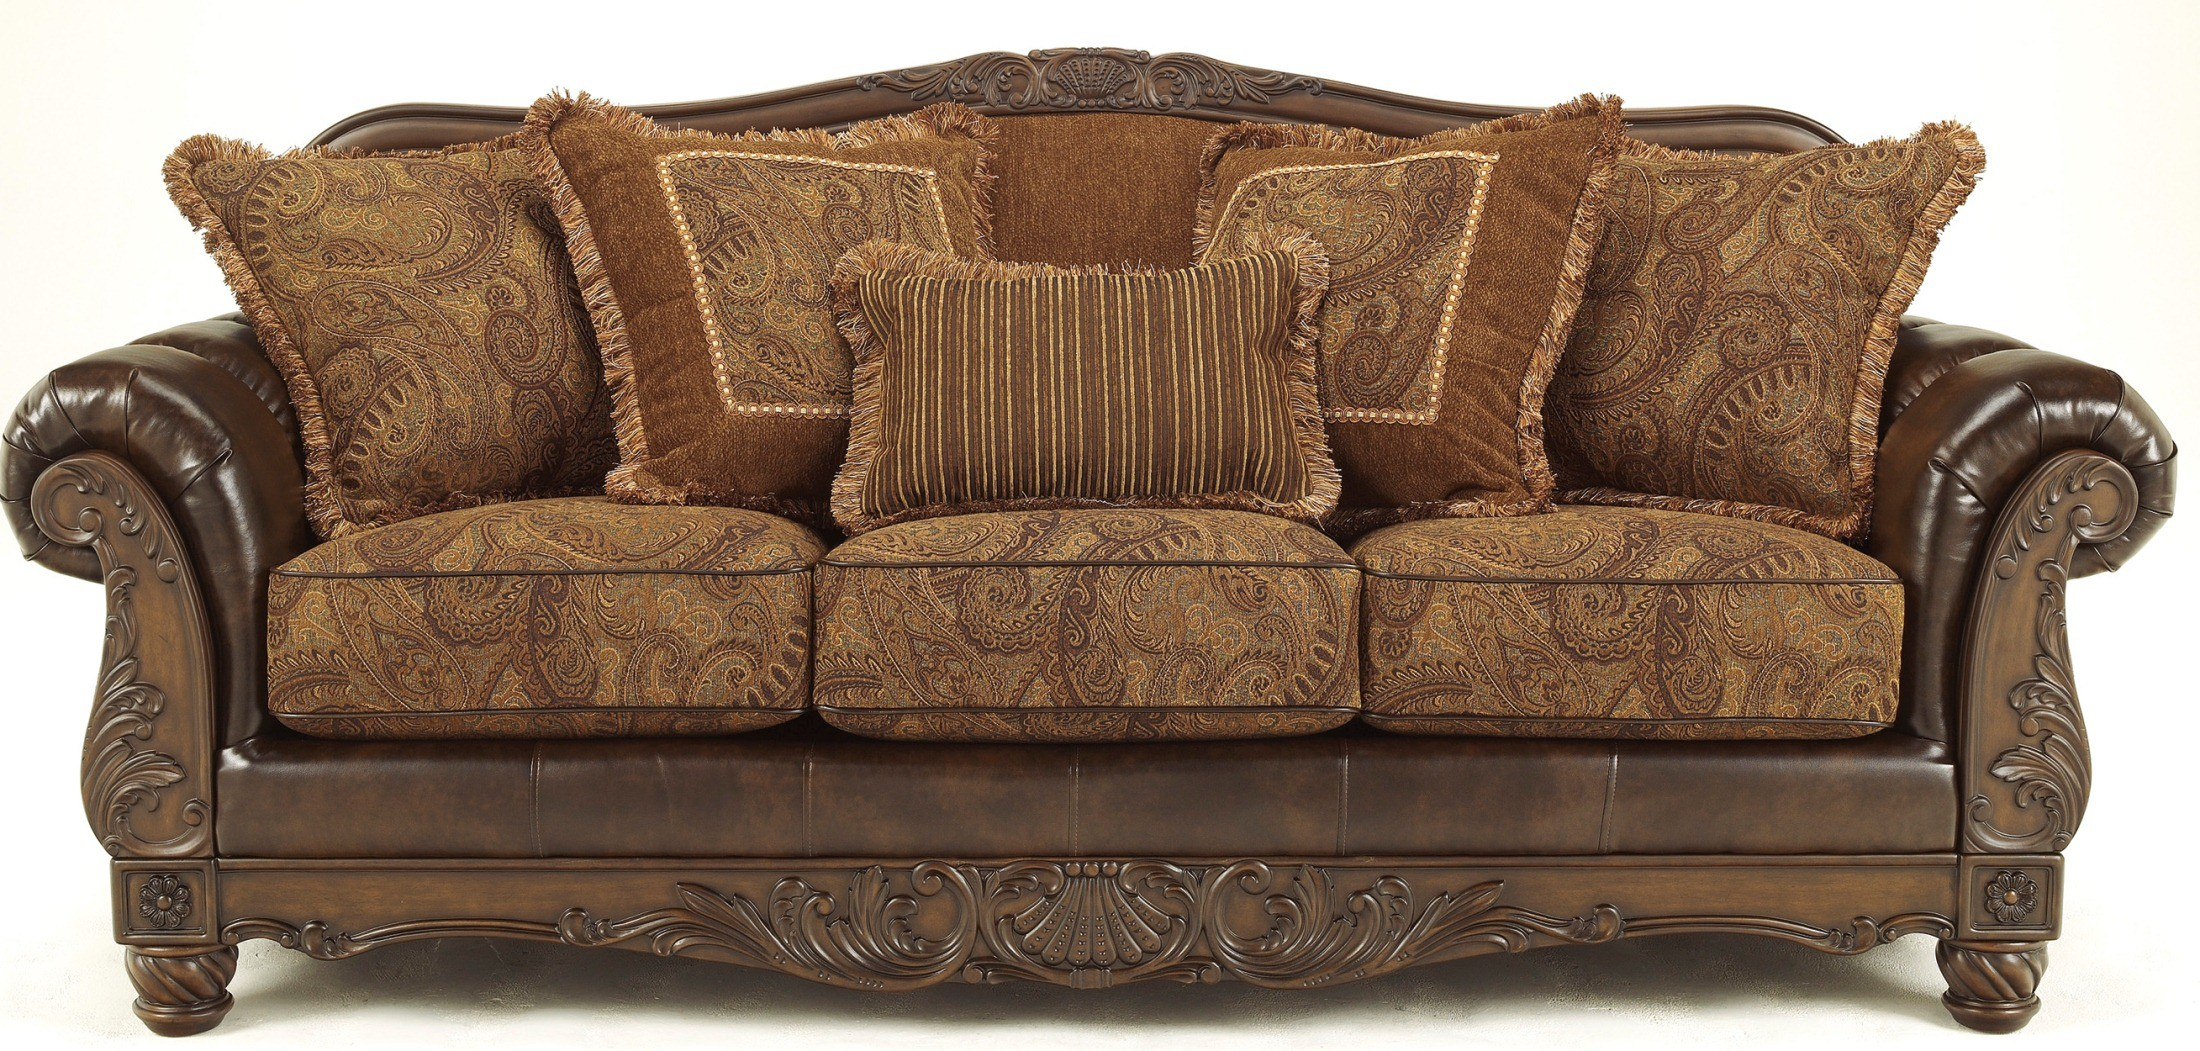 Fresco DuraBlend Antique Sofa from Ashley